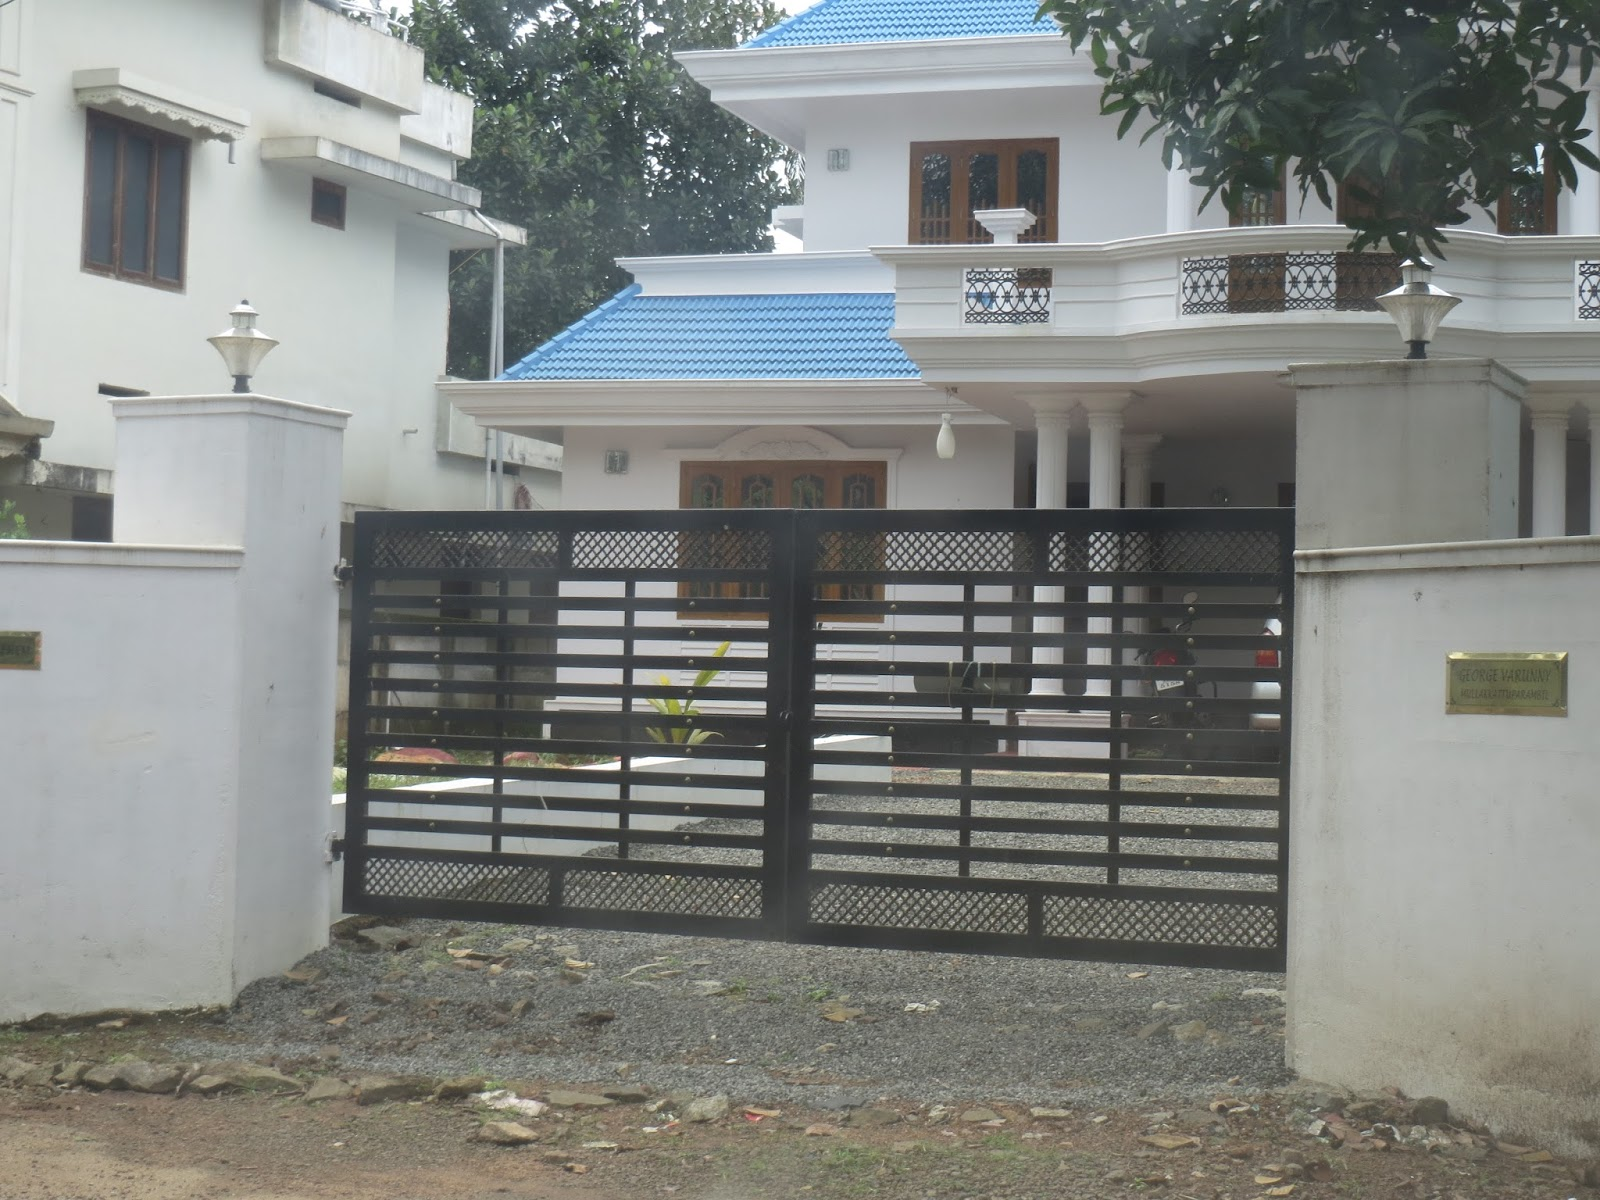 ... gate kerala kerala gate designs kerala gate designs kerala house gate